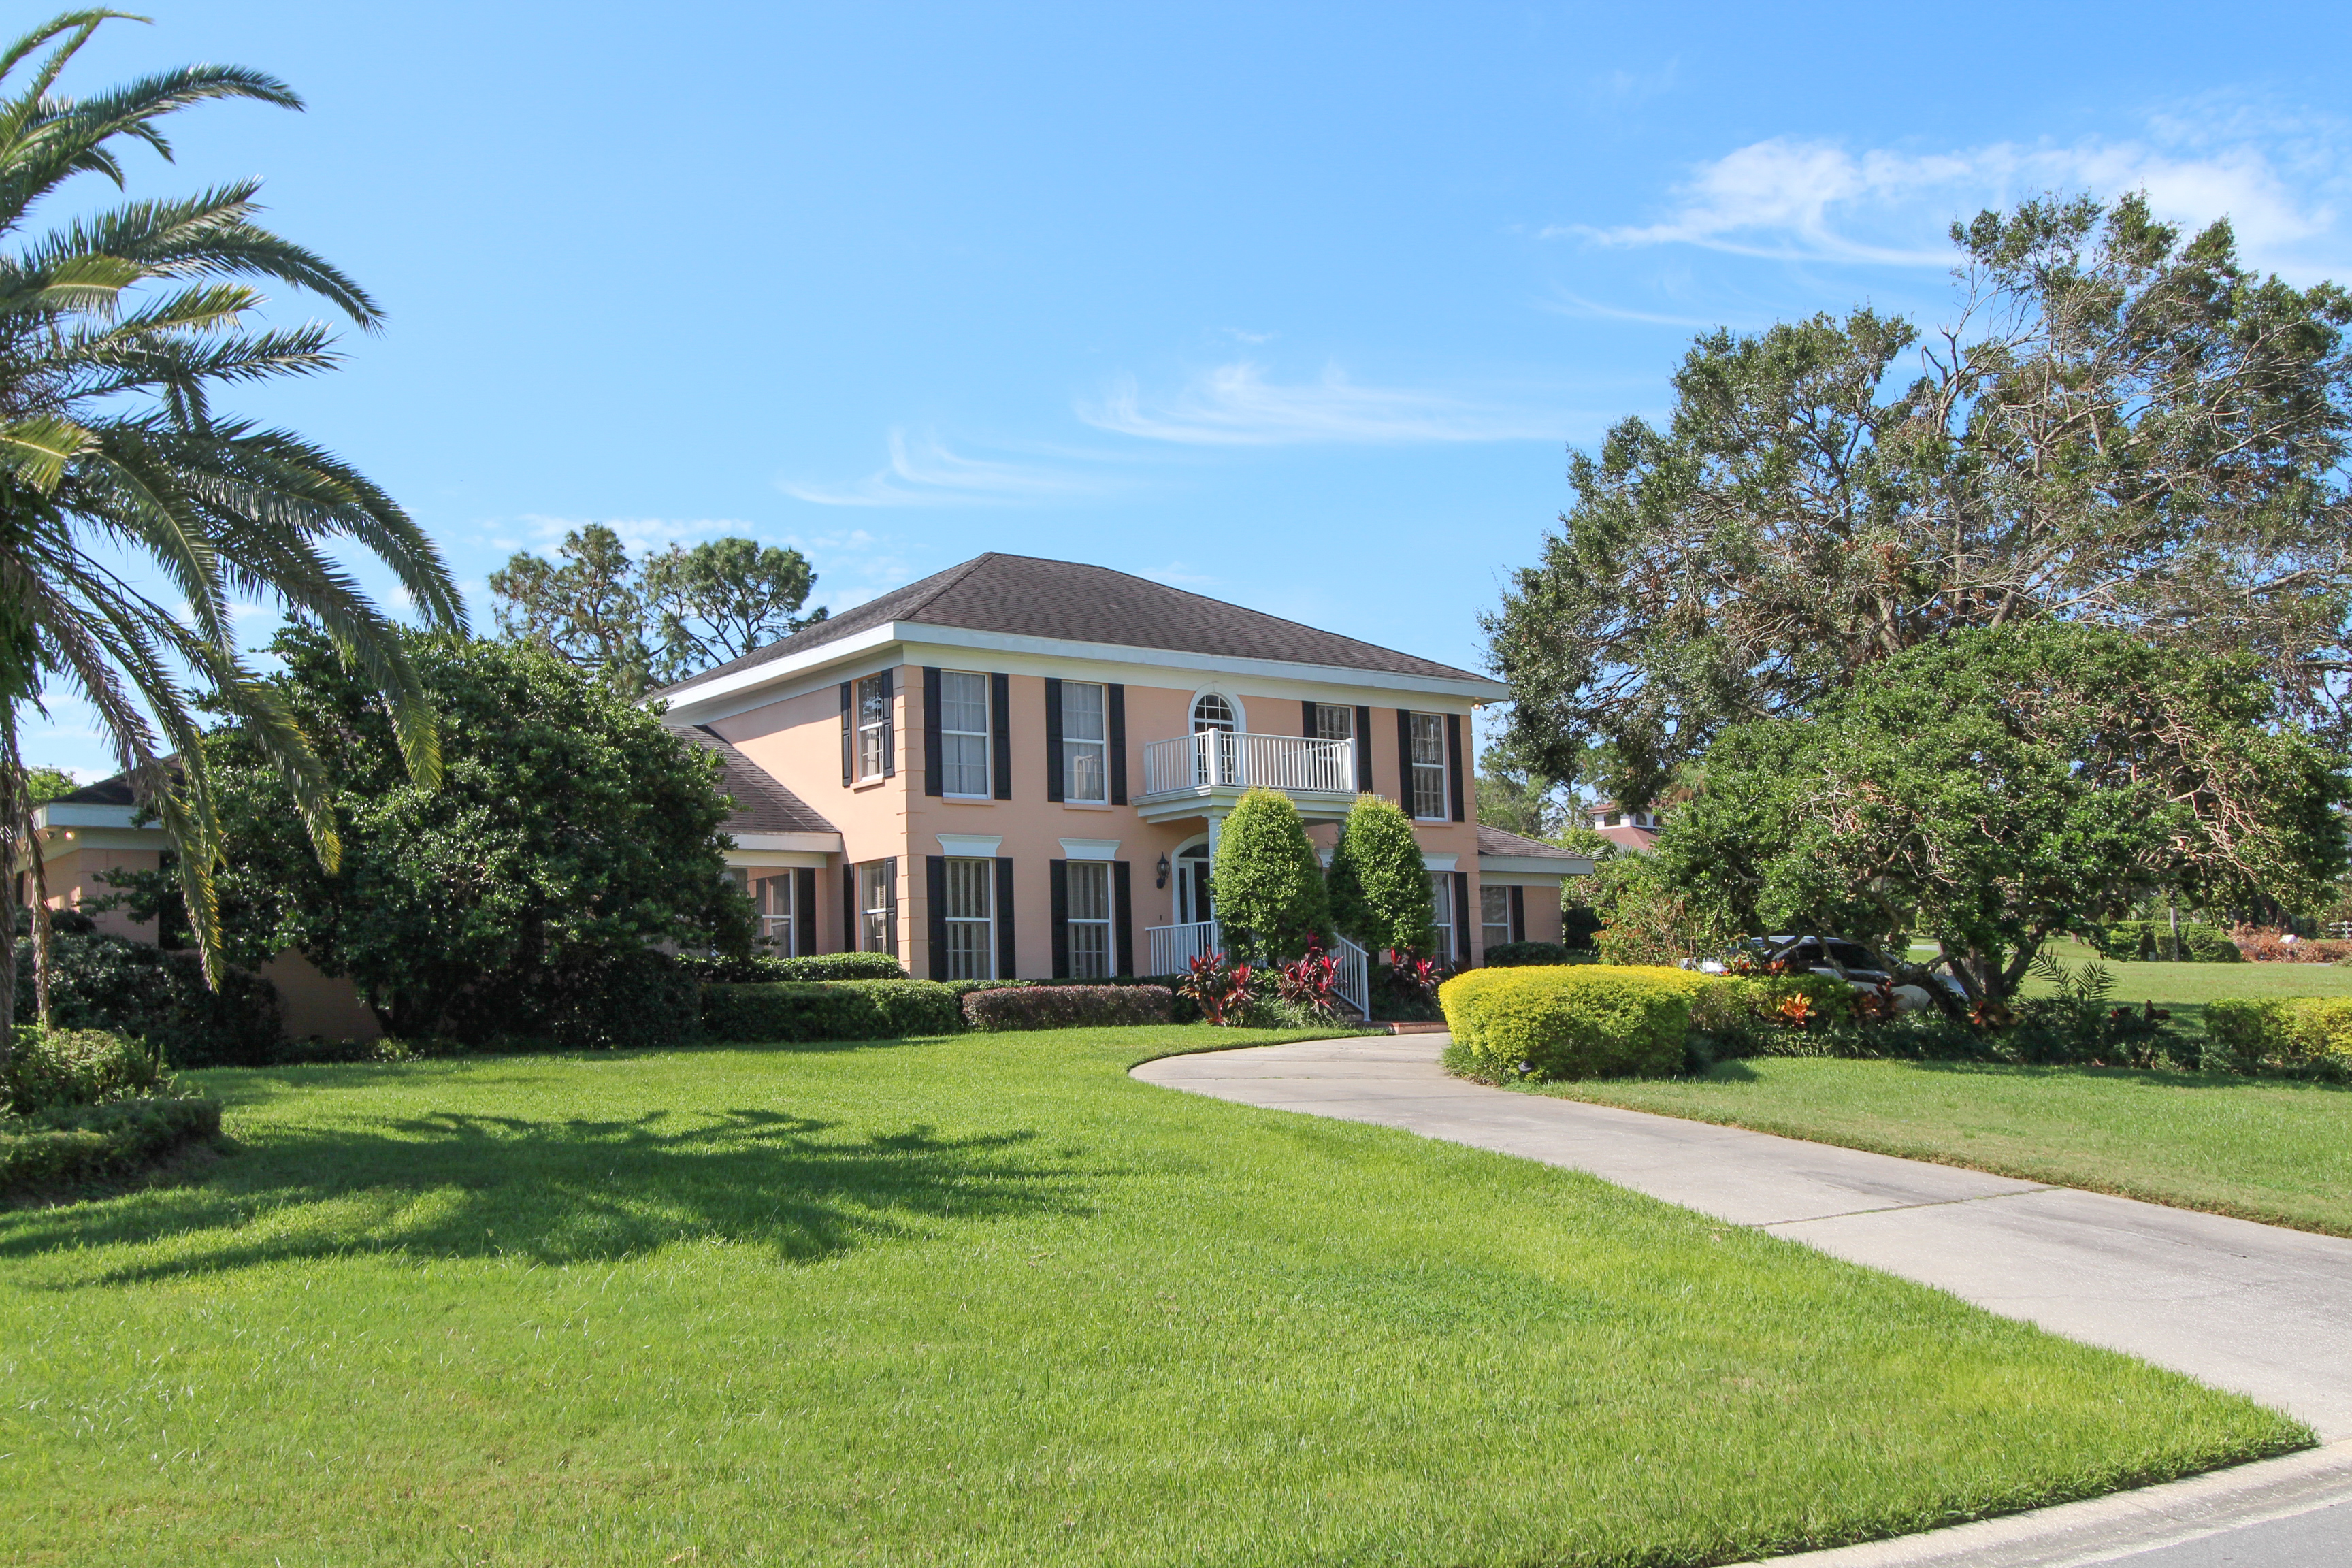 4 br 4 ba 2 story lake view home lakeland fl for 2 story lake house